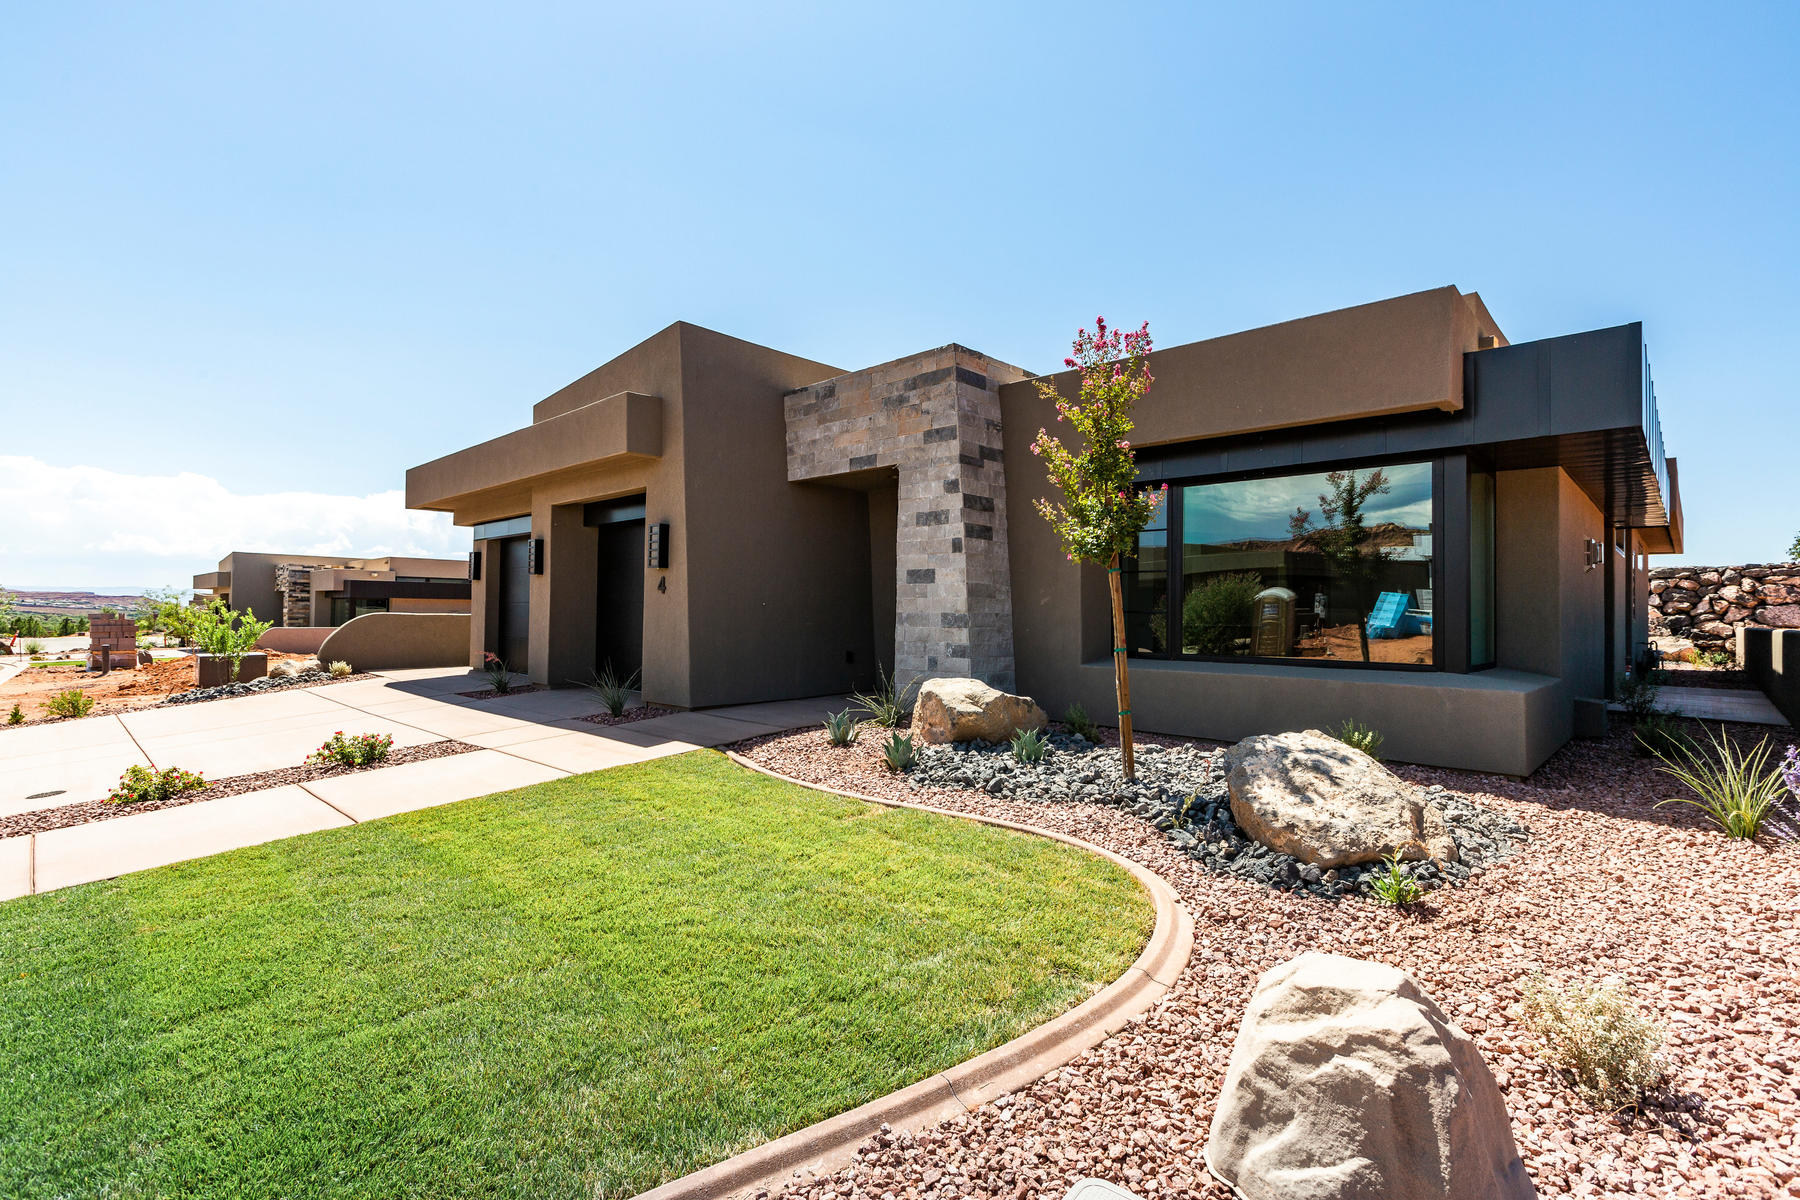 Single Family Homes for Sale at The Getaway 1355 E Snow Canyon Pkwy Lot 4, Ivins, Utah 84738 United States